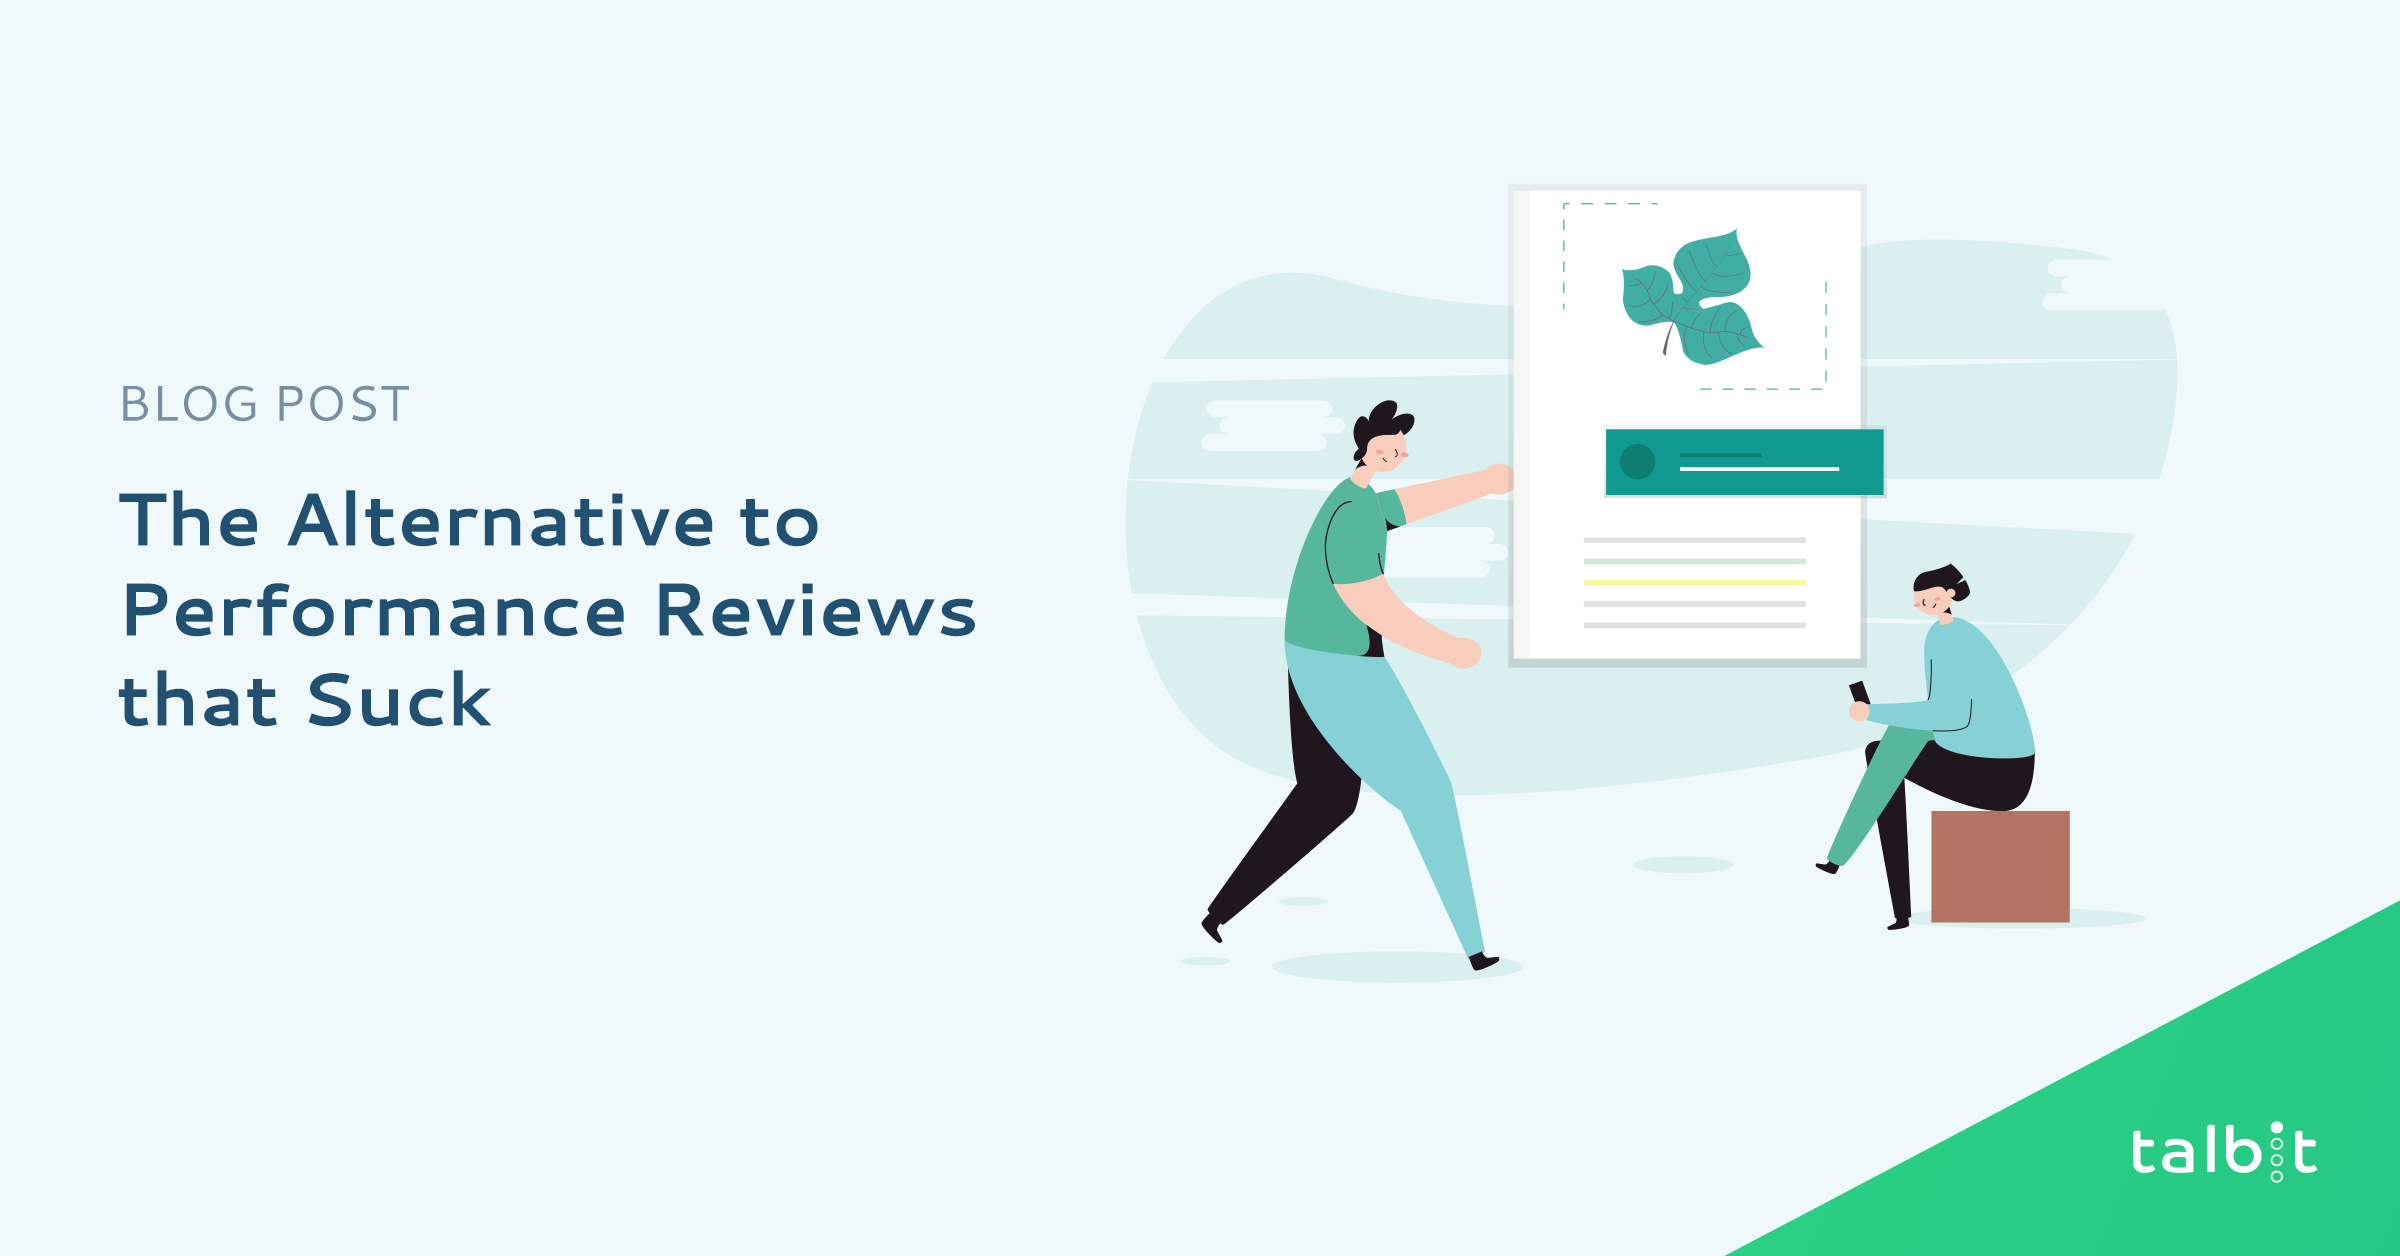 The Alternative to Performance Reviews that Suck